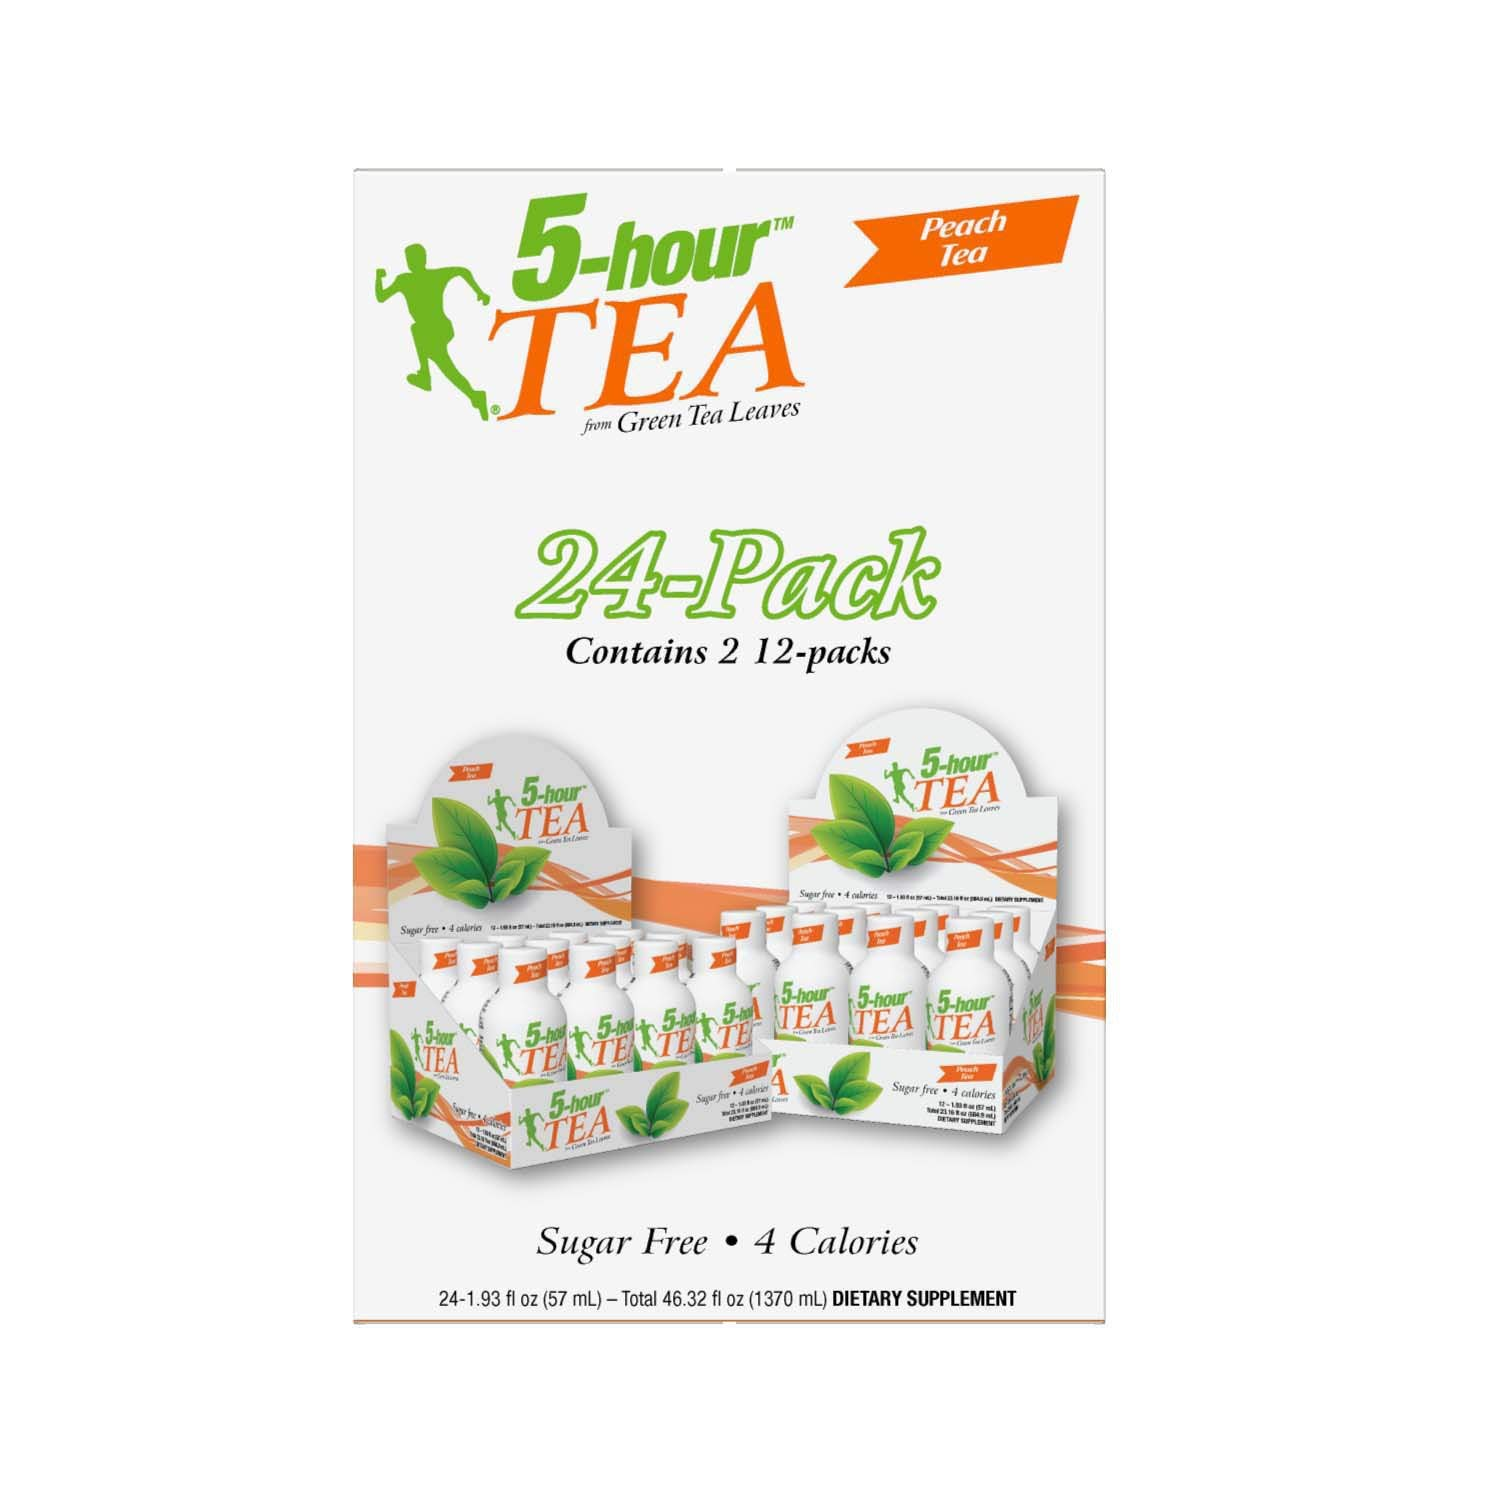 5-hour Green TEA - Peach Flavored - 24 Count by 5-Hours (Image #4)